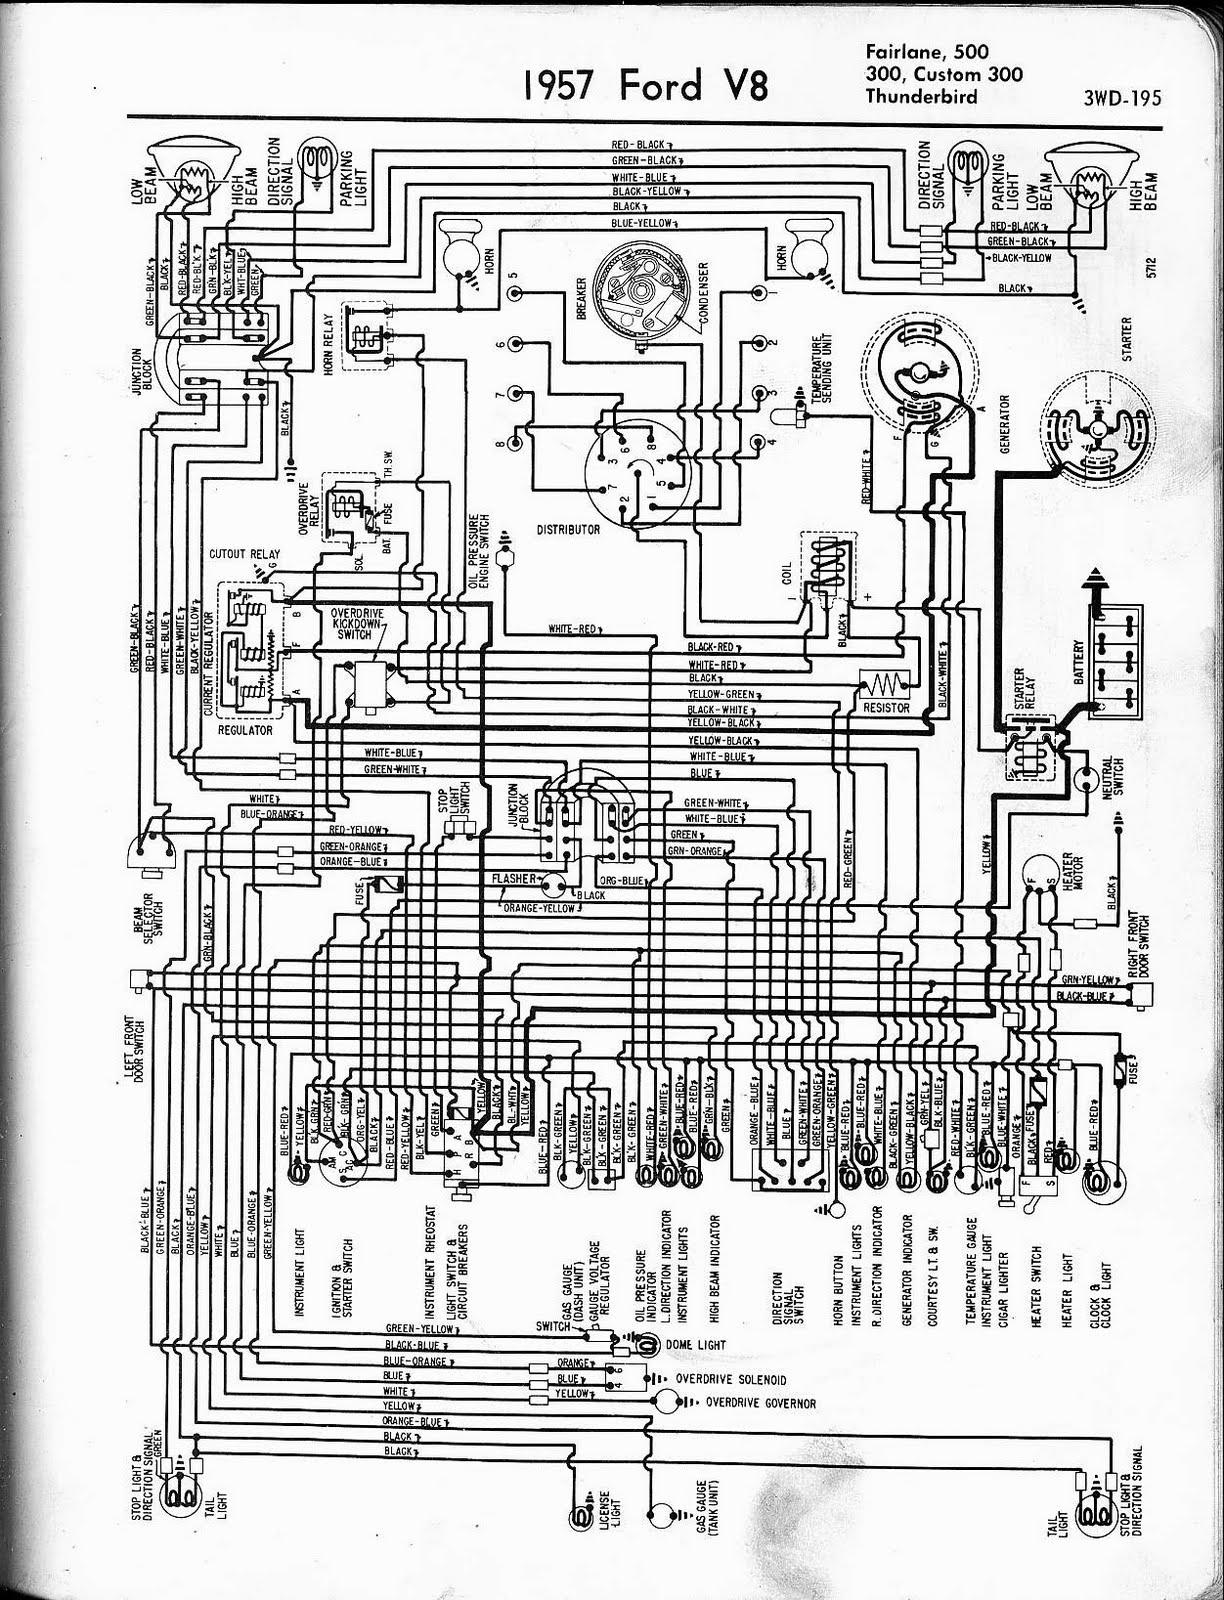 small resolution of free auto wiring diagram 1957 ford v8 fairlane custom300 crown vic fuse diagram 2006 ford crown